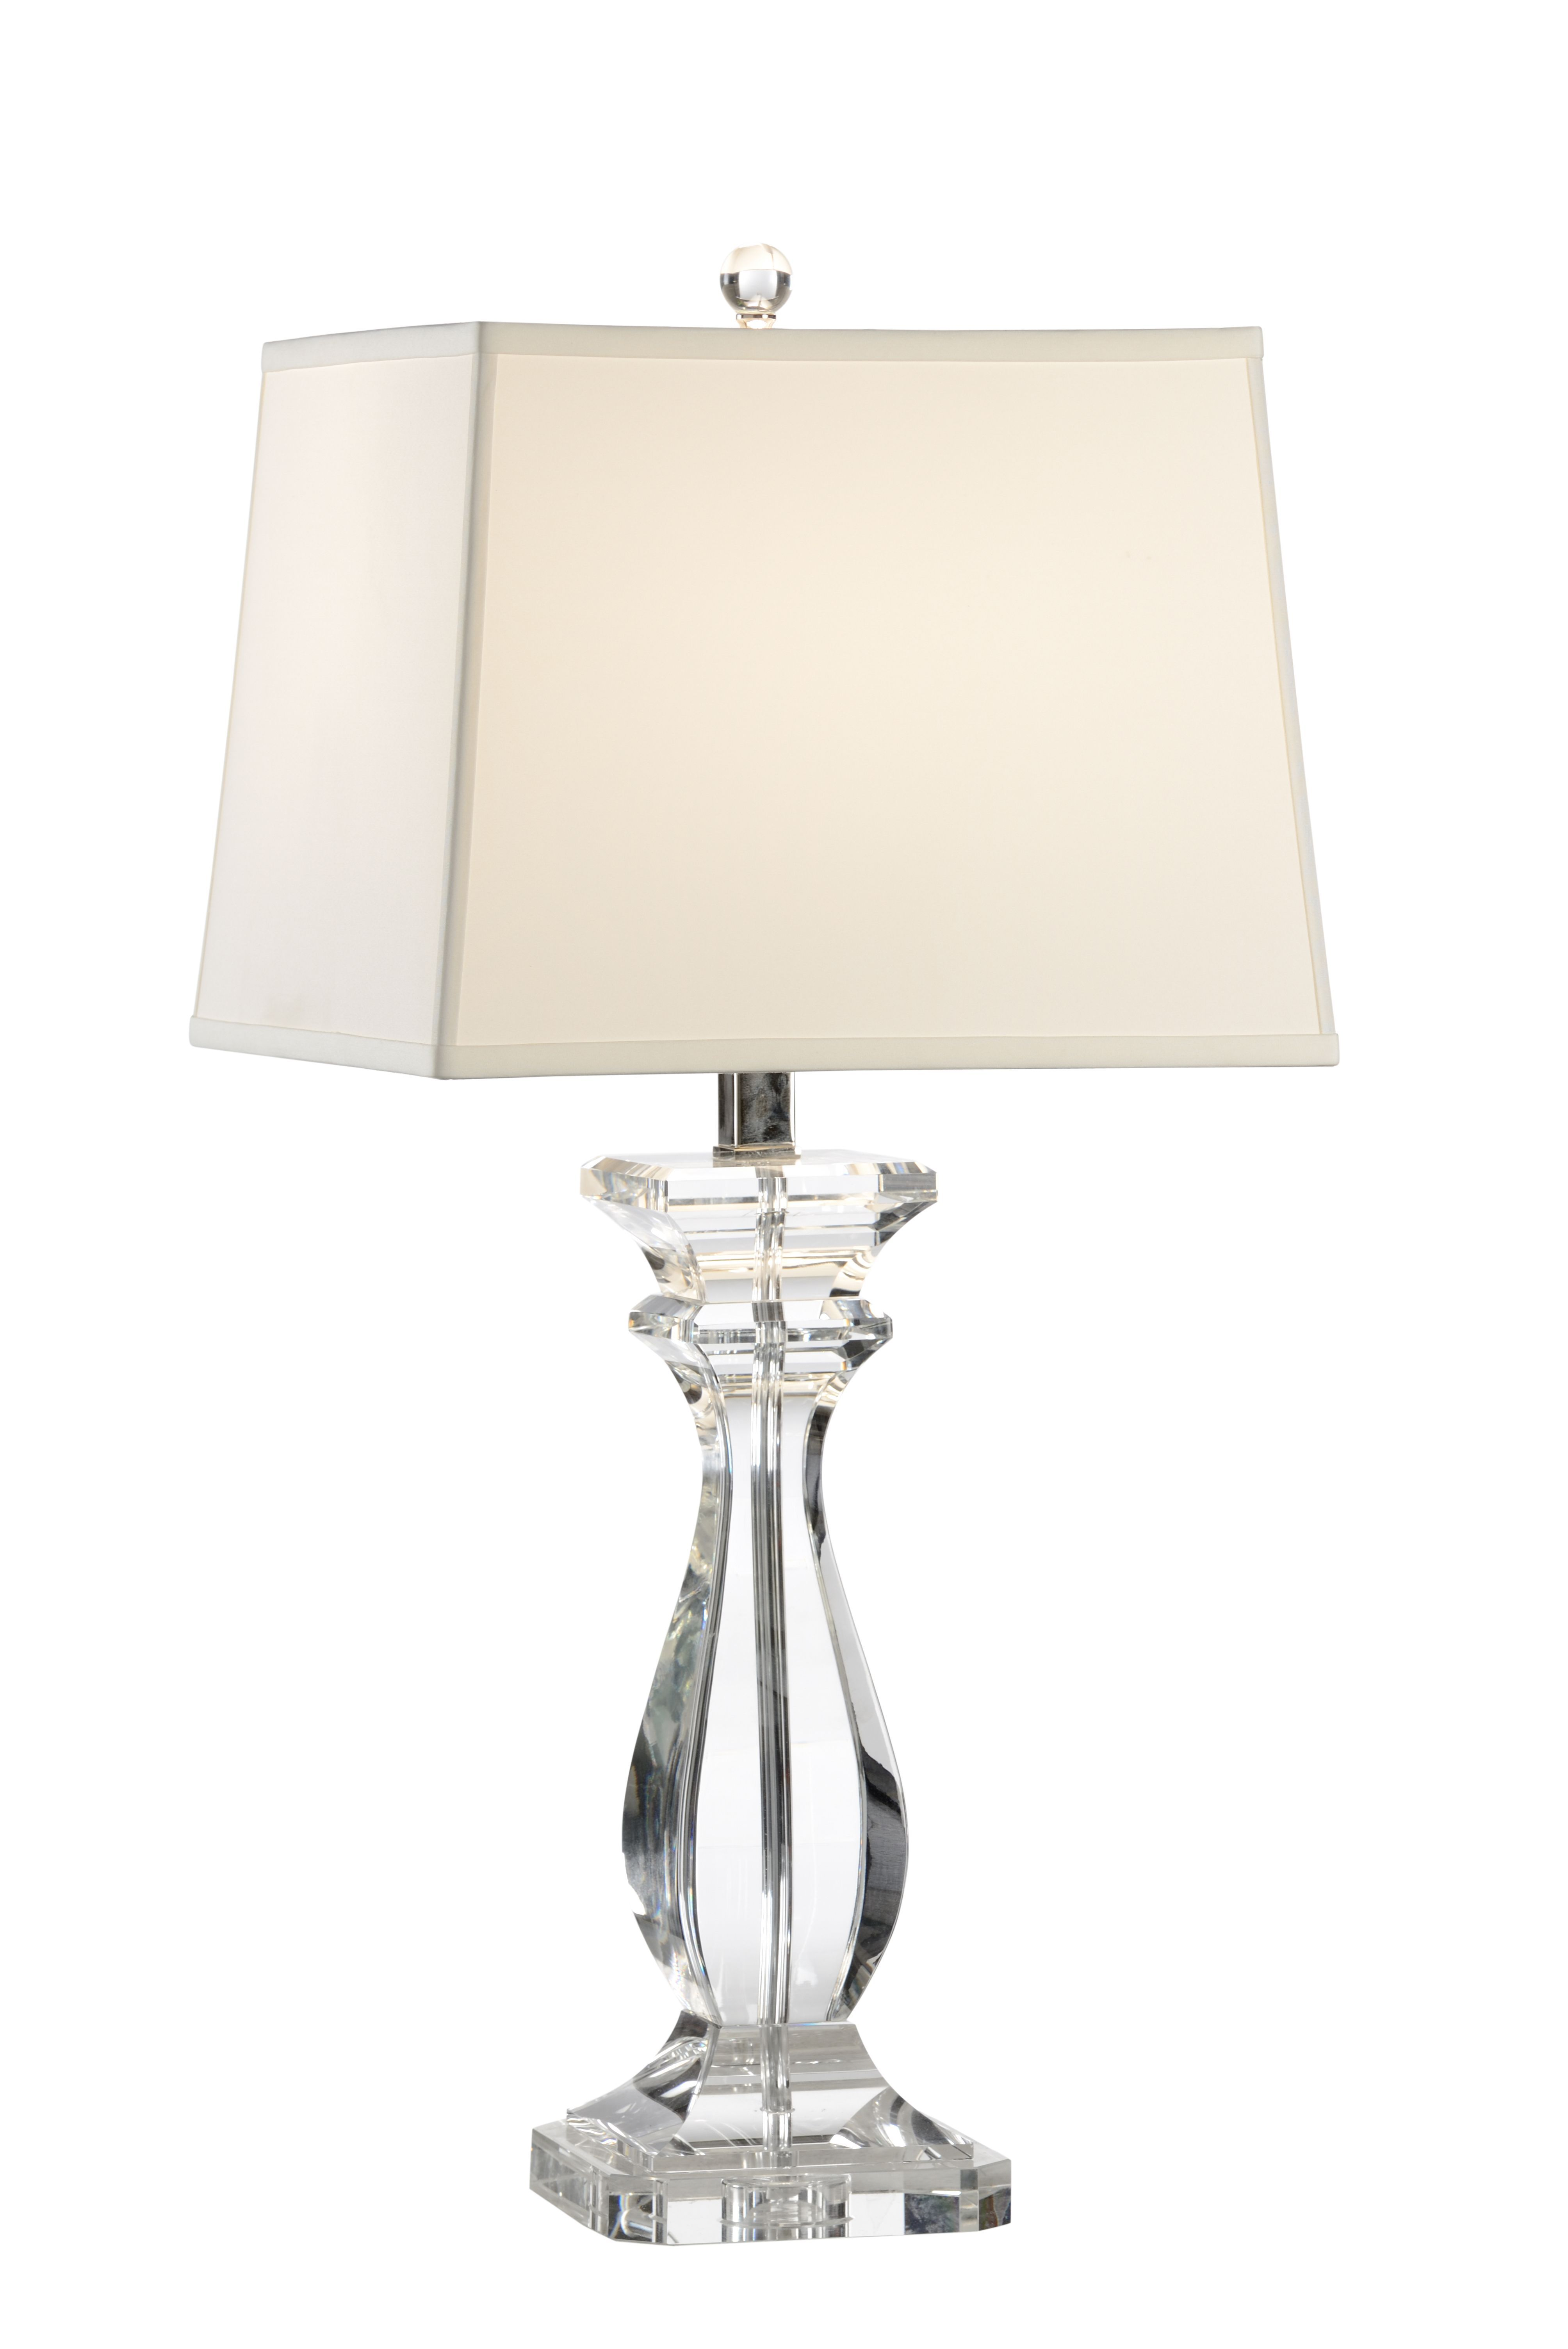 This Lovely Lamp Features A Solid Crystal Base With Polished